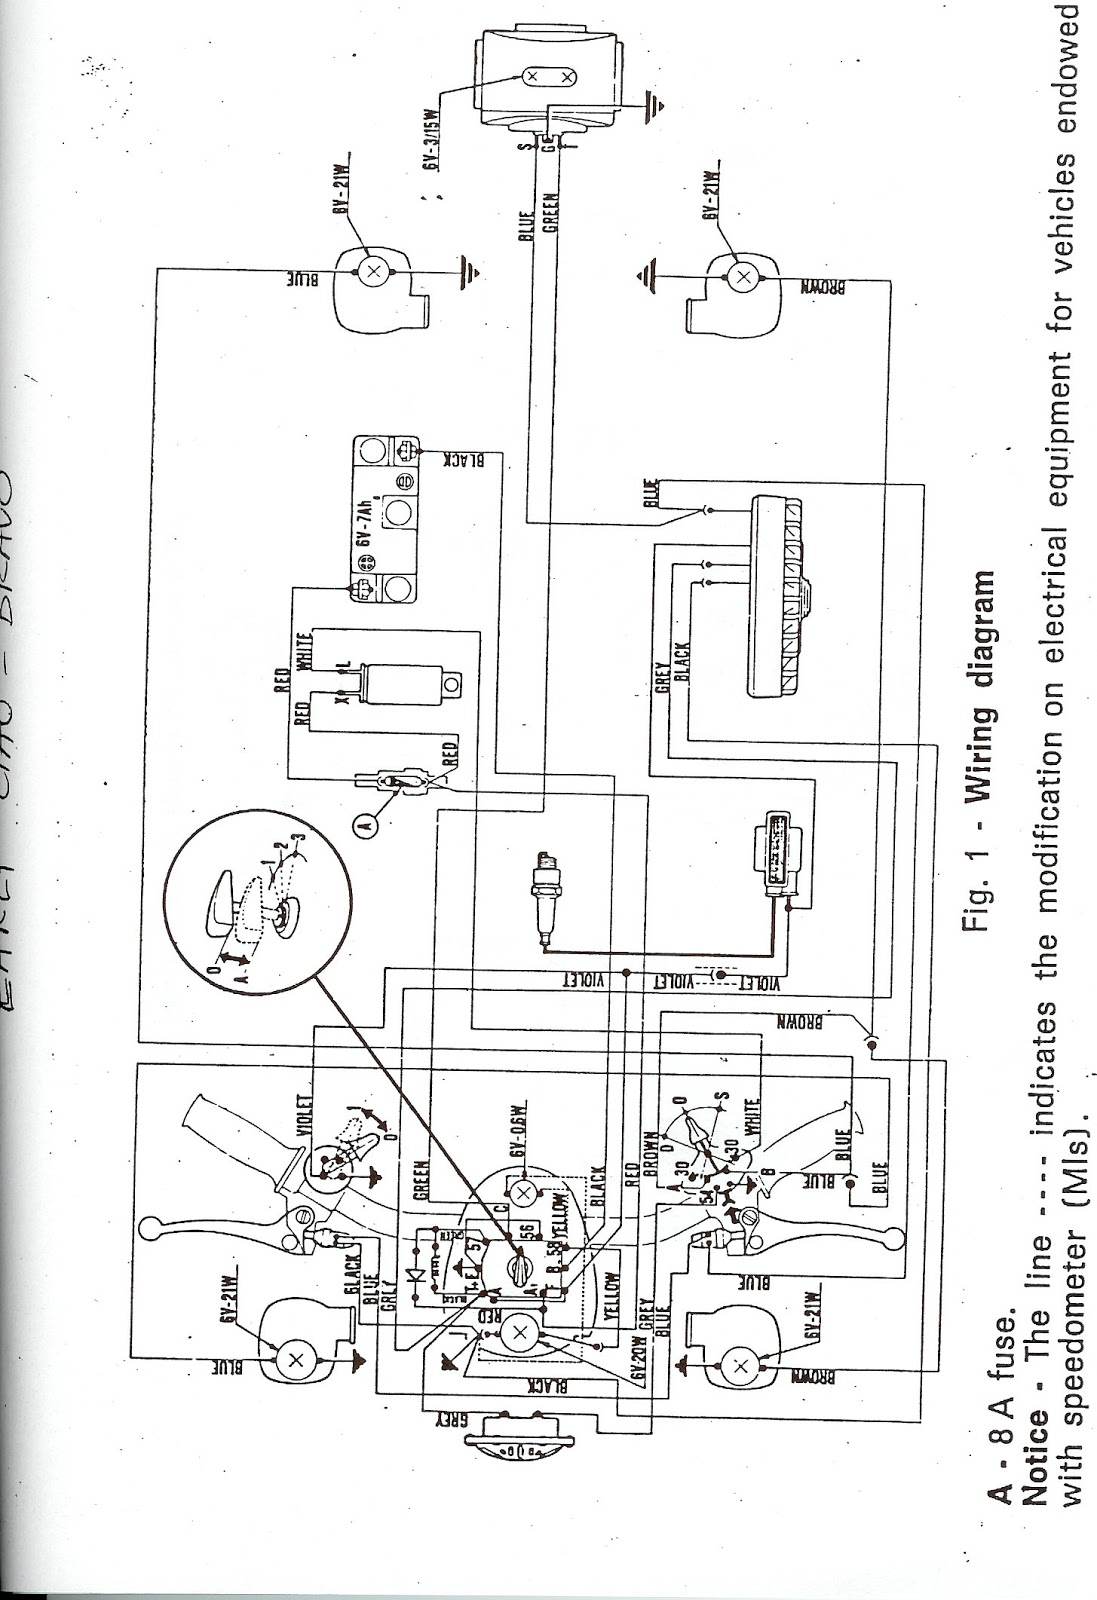 Dd15 Wiring Diagram Trusted Diagrams Detroit Ciao Burbs U2022 Rh Soulmatestyle Co Basic Electrical